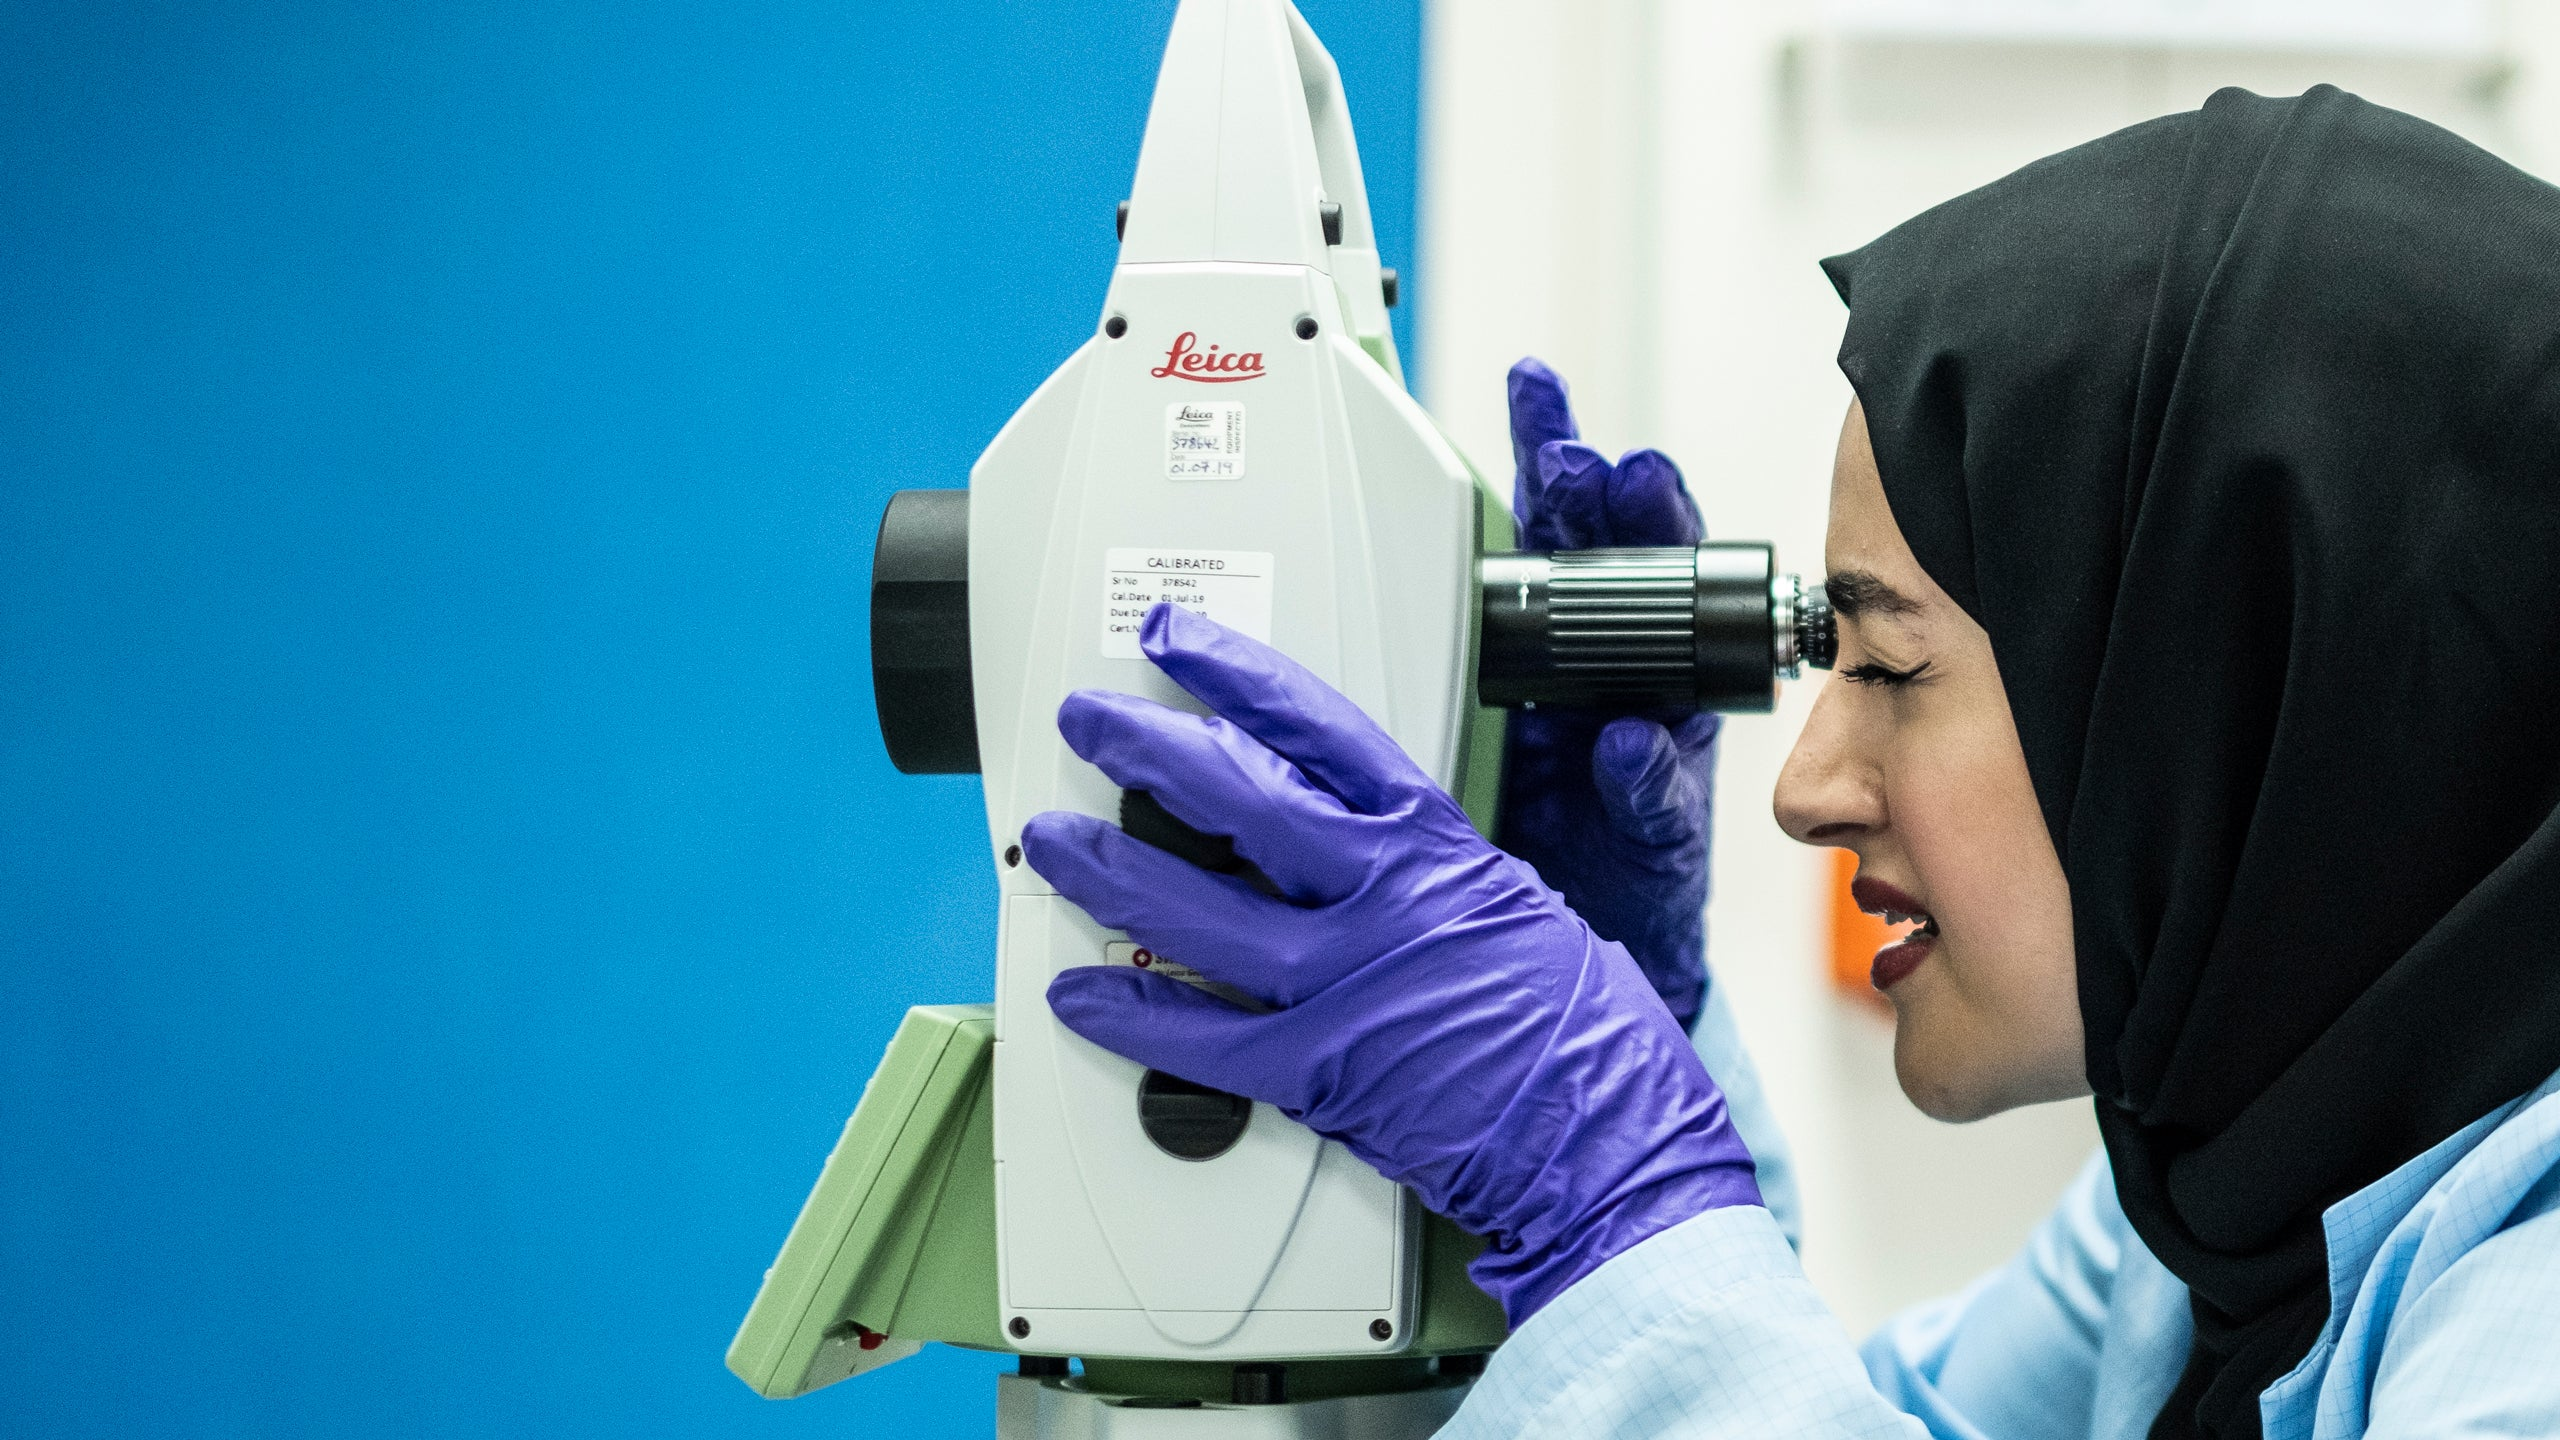 Muna al Hammadi looks through the viewfinder of a measuring machine